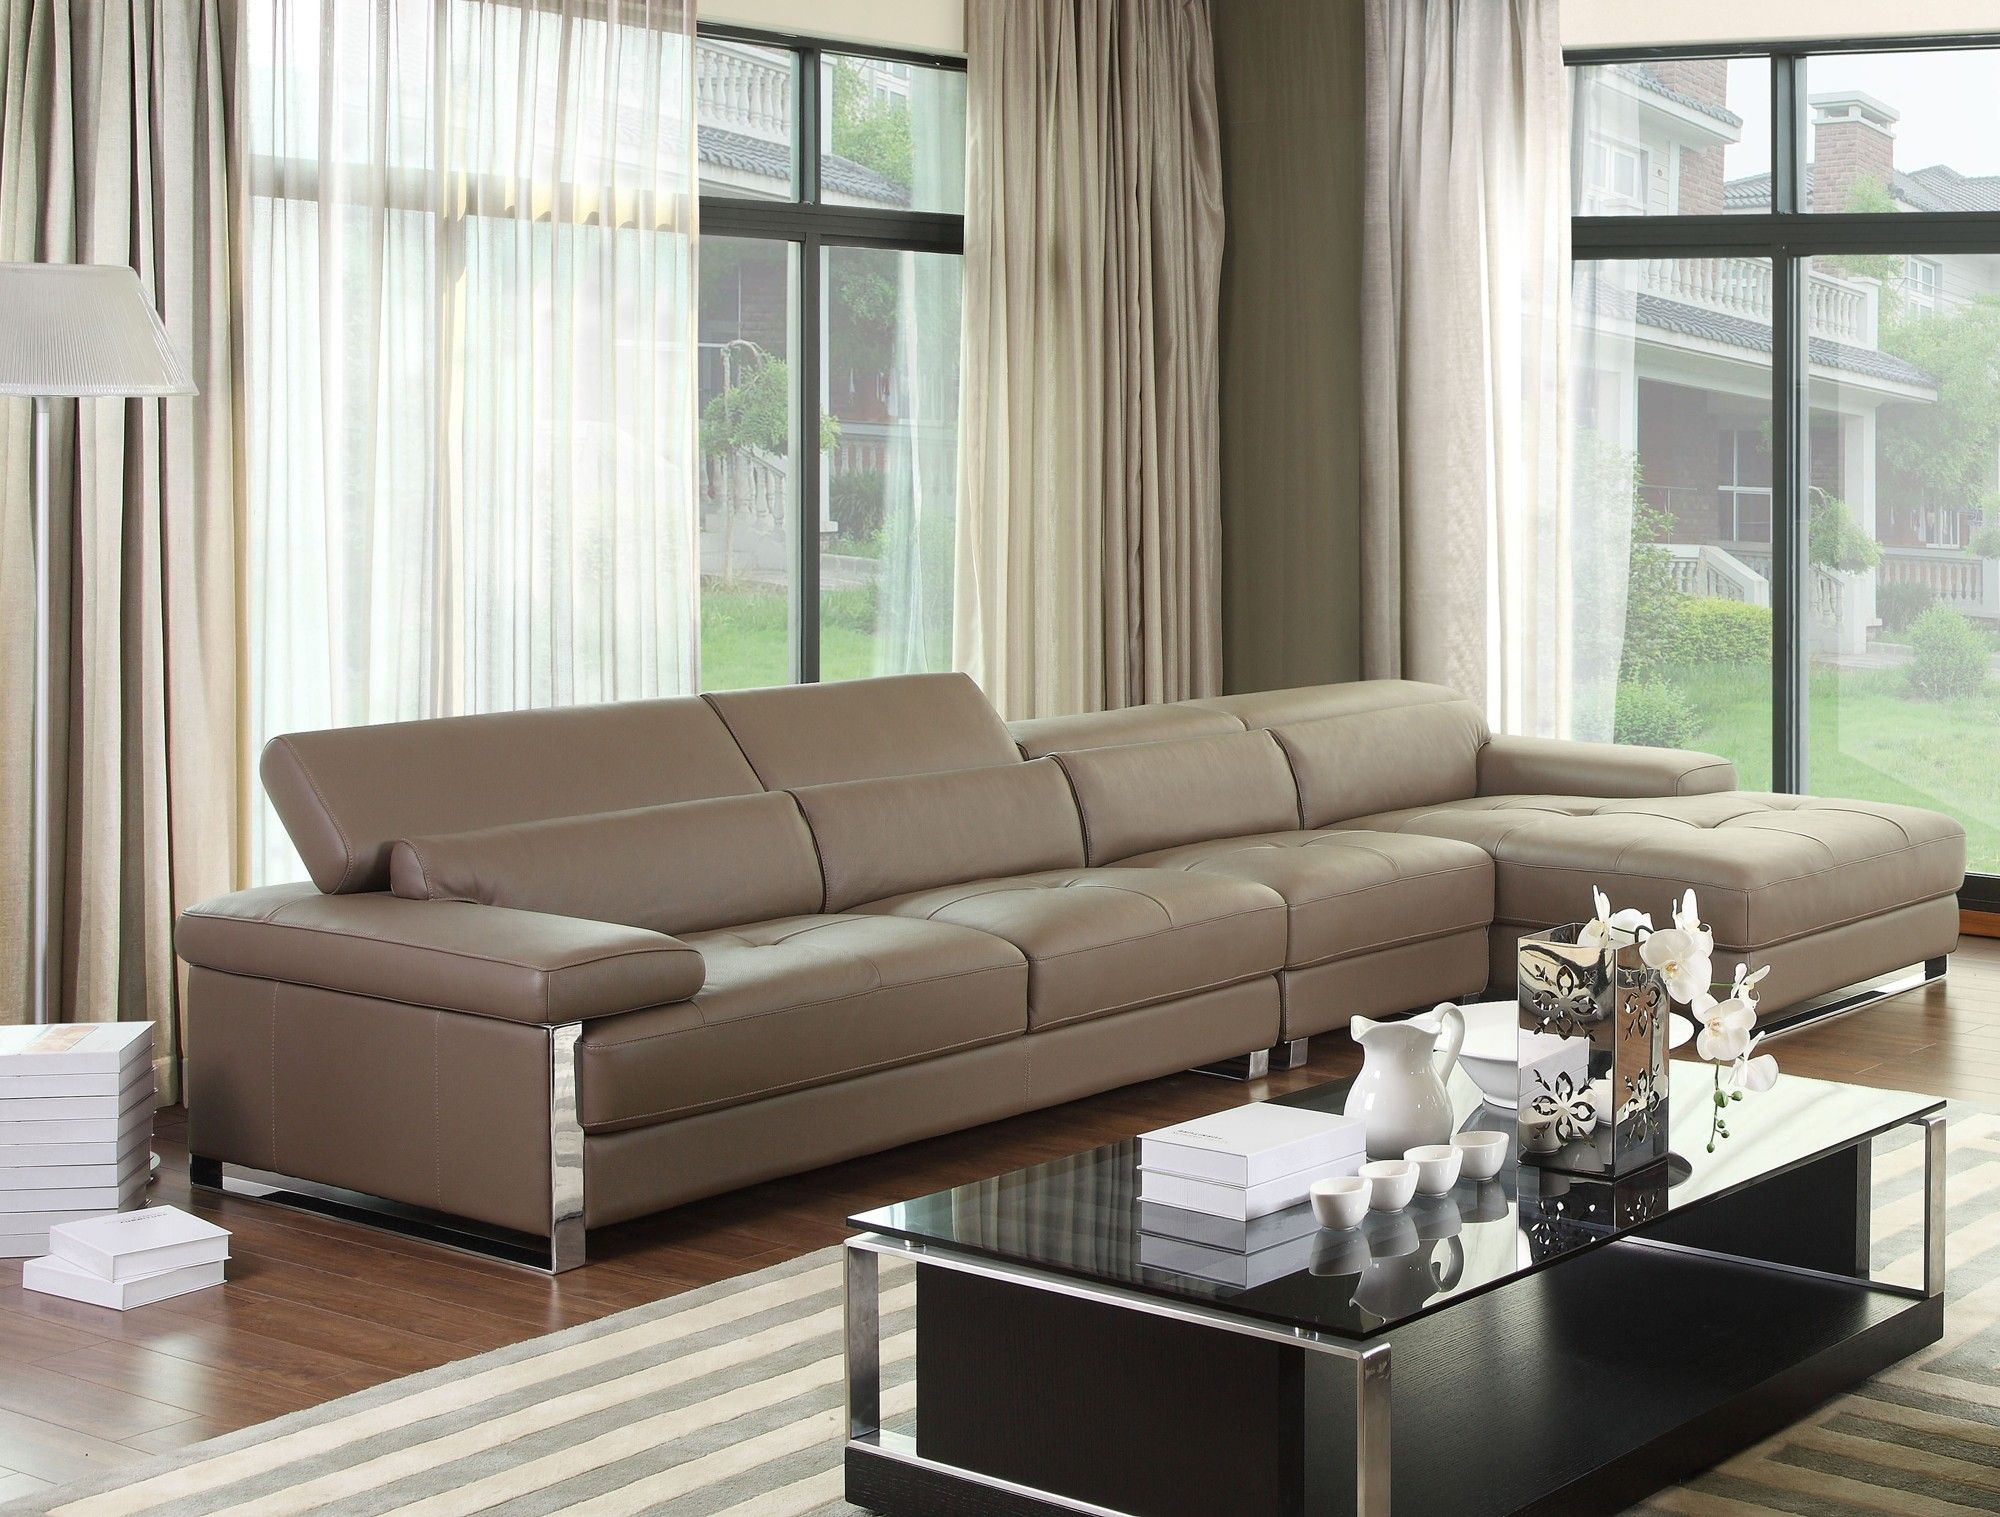 Chelsea Grey Corner Leather Sofa Suite For Details Visit Www Sofabespoke Co Uk Leather Corner Sofa Sofa Com Sofa Furniture